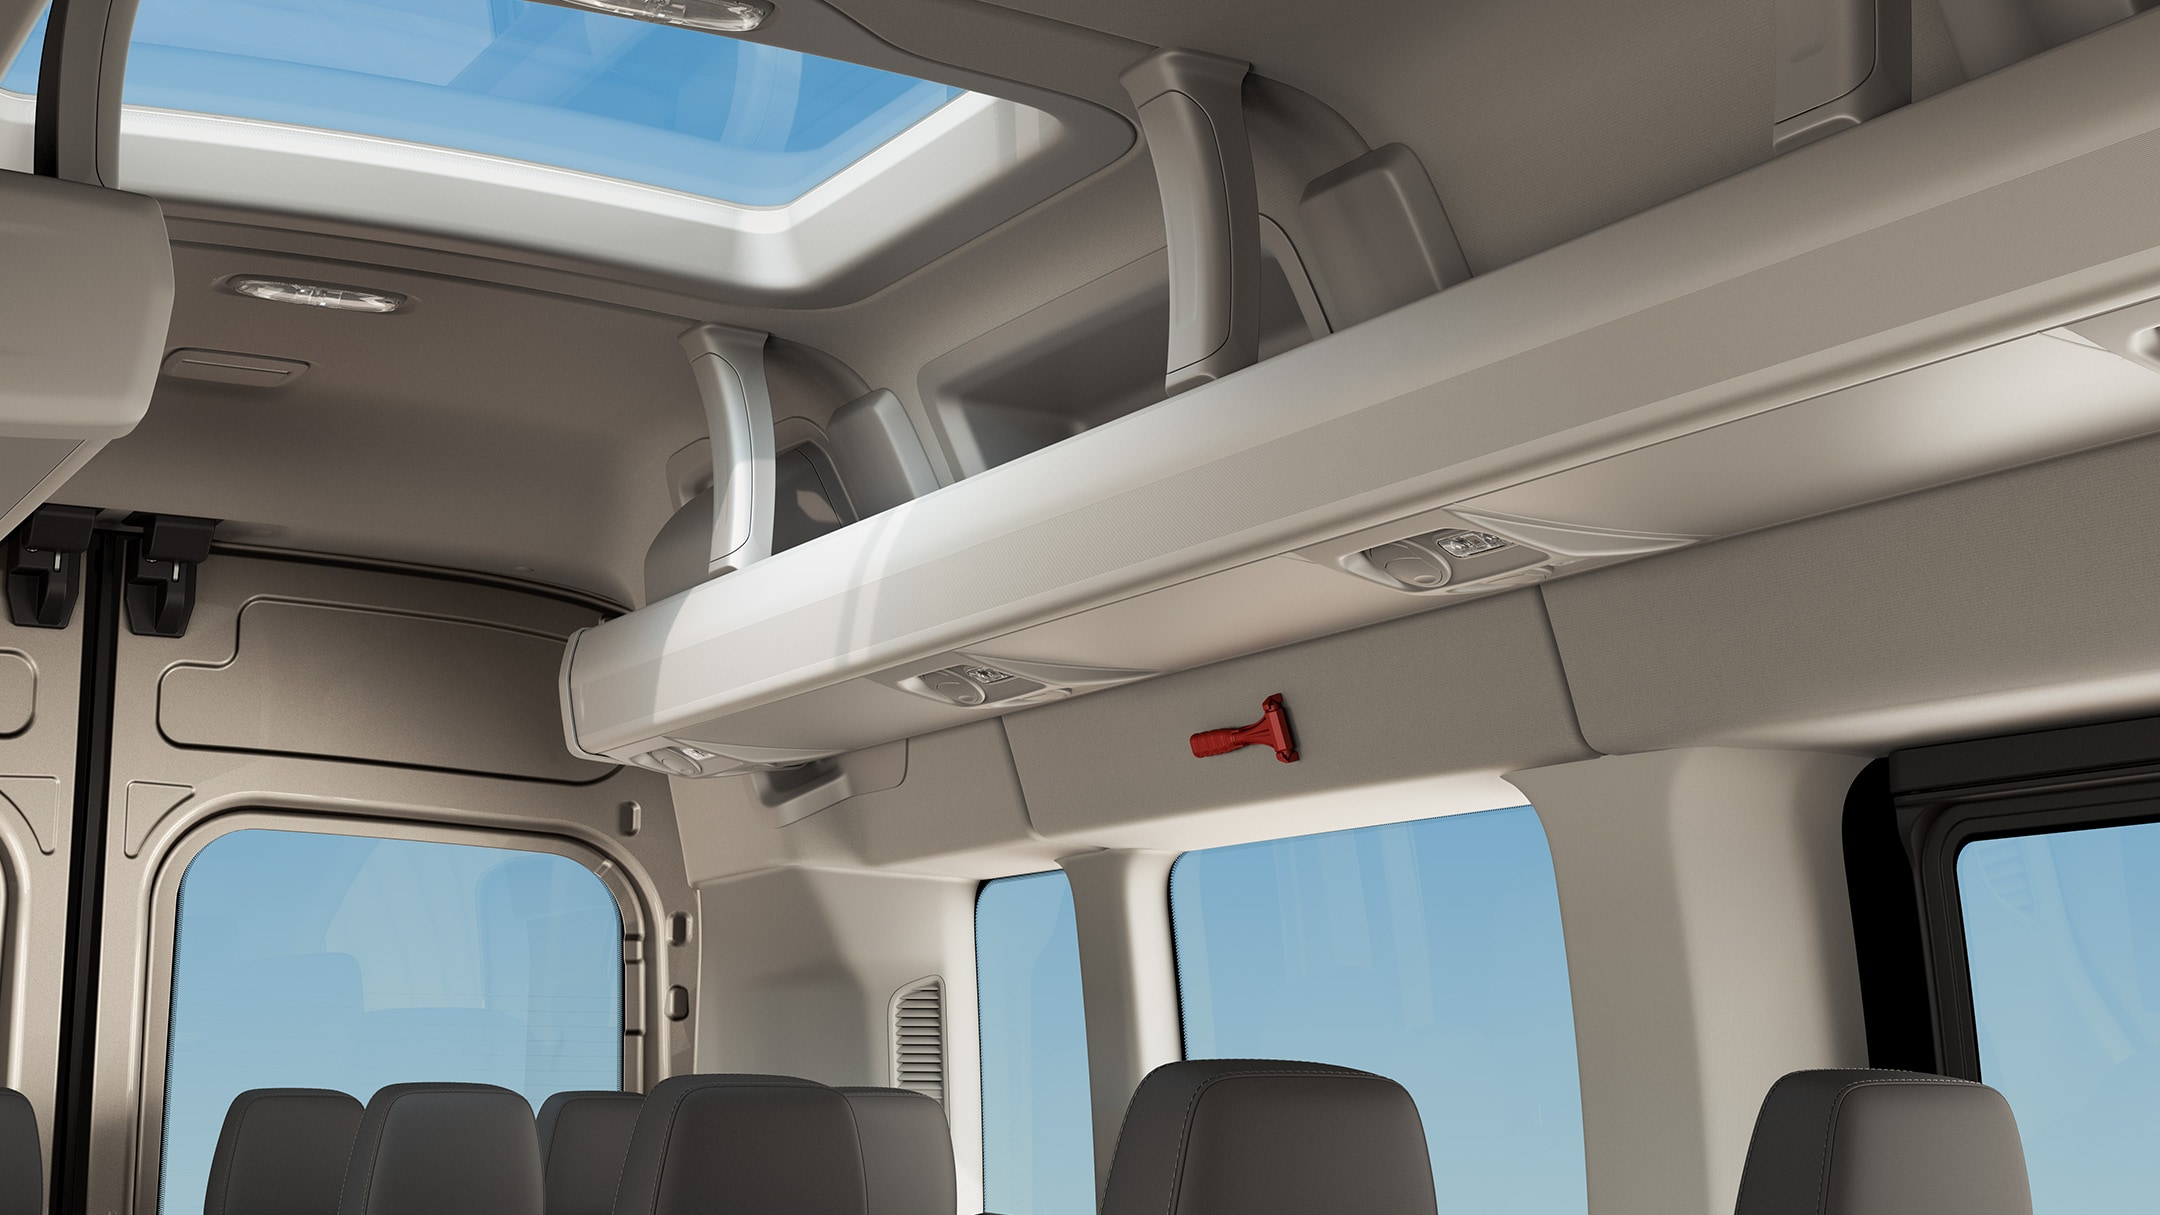 All New Ford Transit Minibus rear interior roof close up